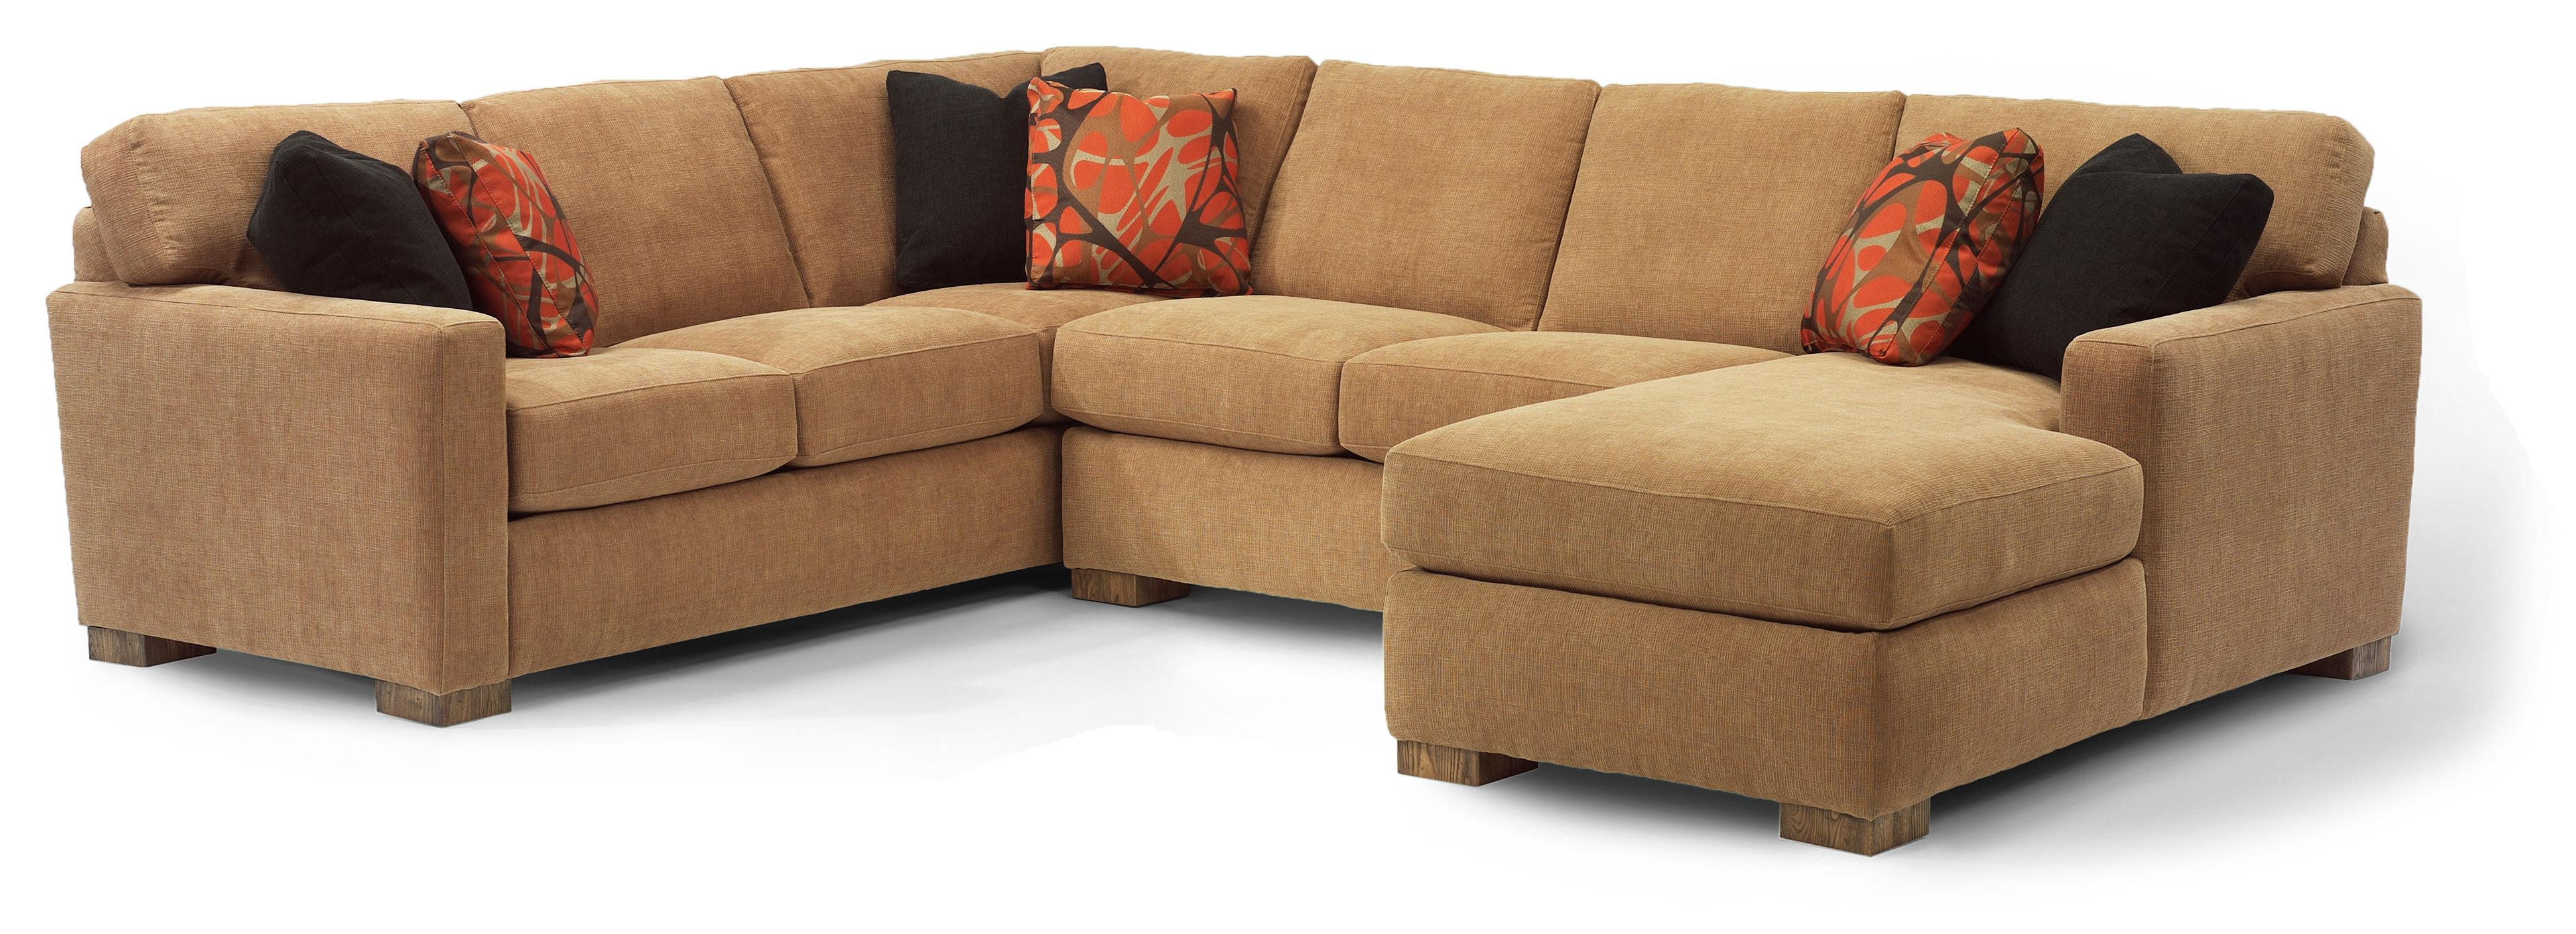 item seats products back sectional with number furniture industries upholstery couch b piece tufted simmons chaise sofa